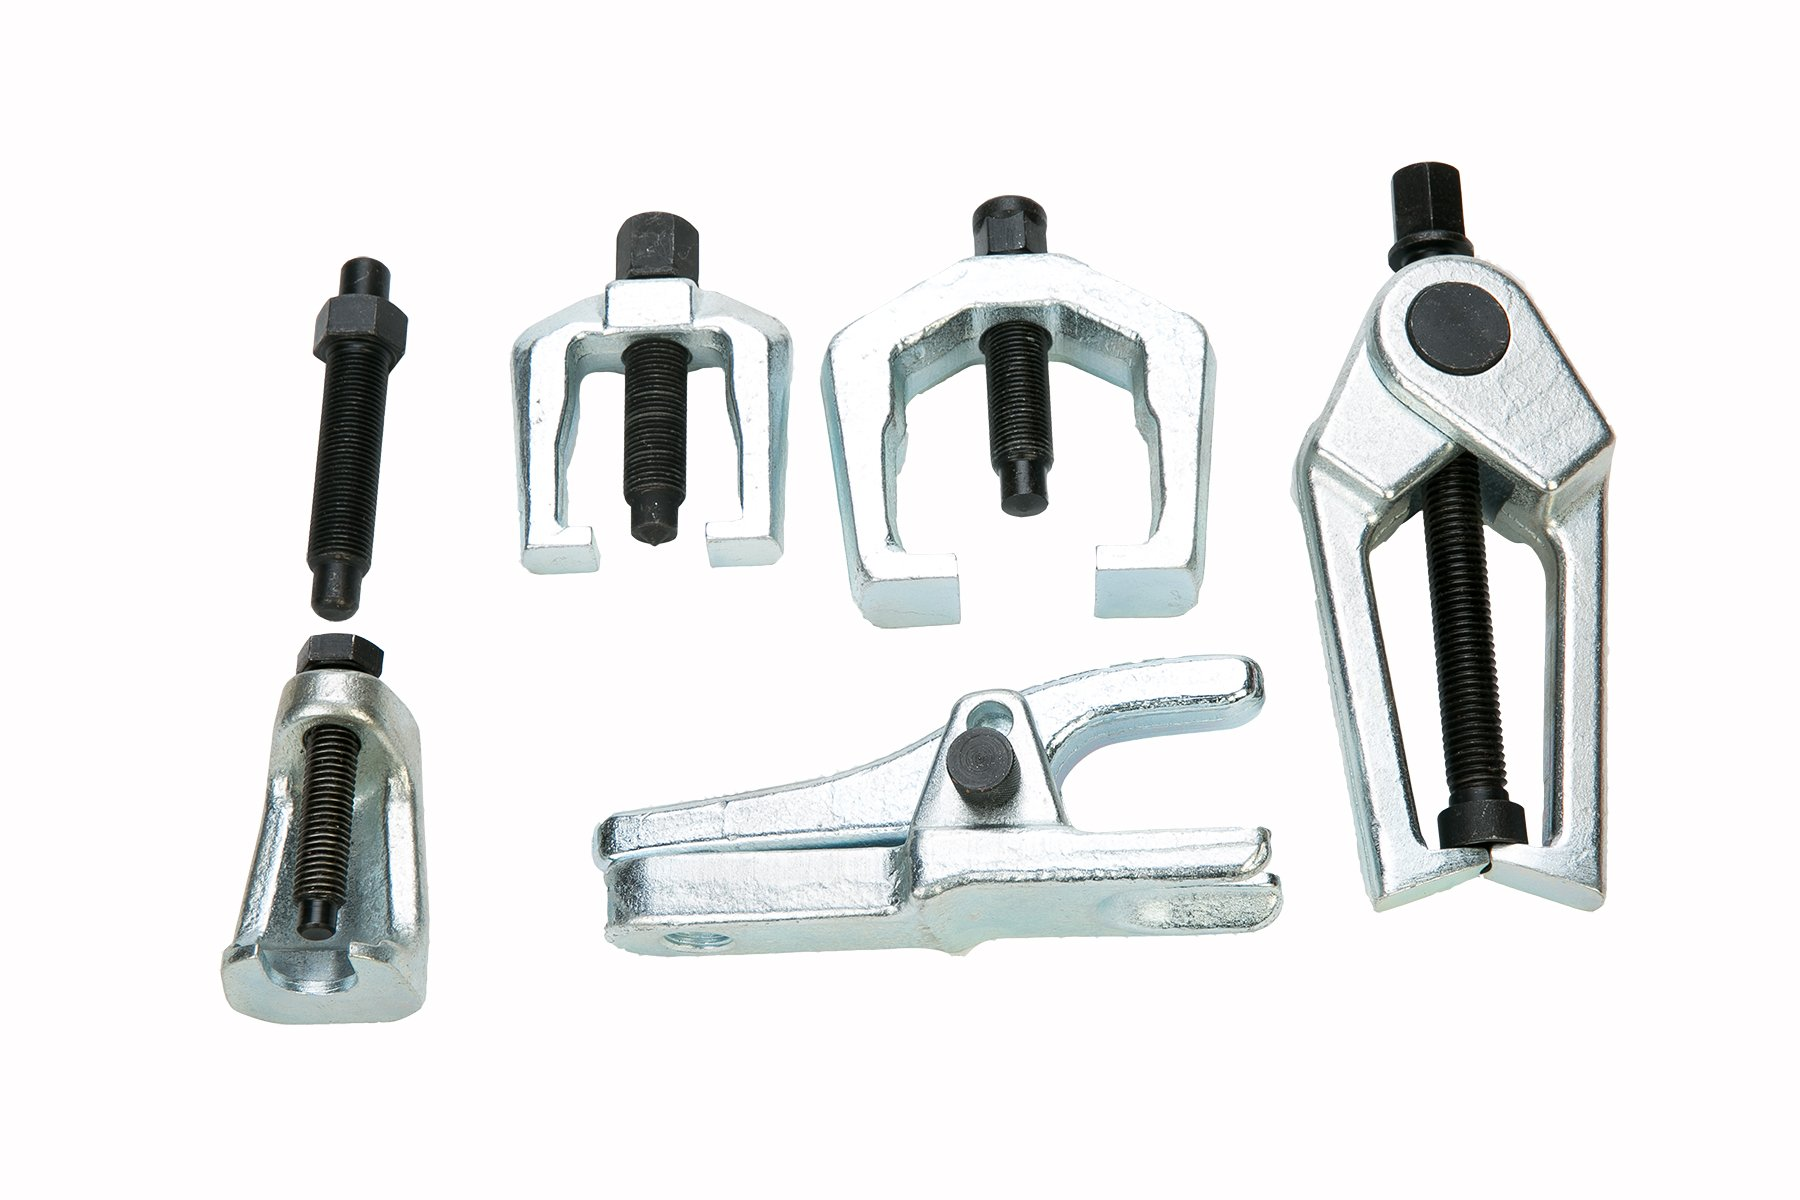 8milelake 6pc Front End Service Tool Kit Ball Joint Separator Pitman Arm Tie Rod Puller by 8MILELAKE (Image #2)